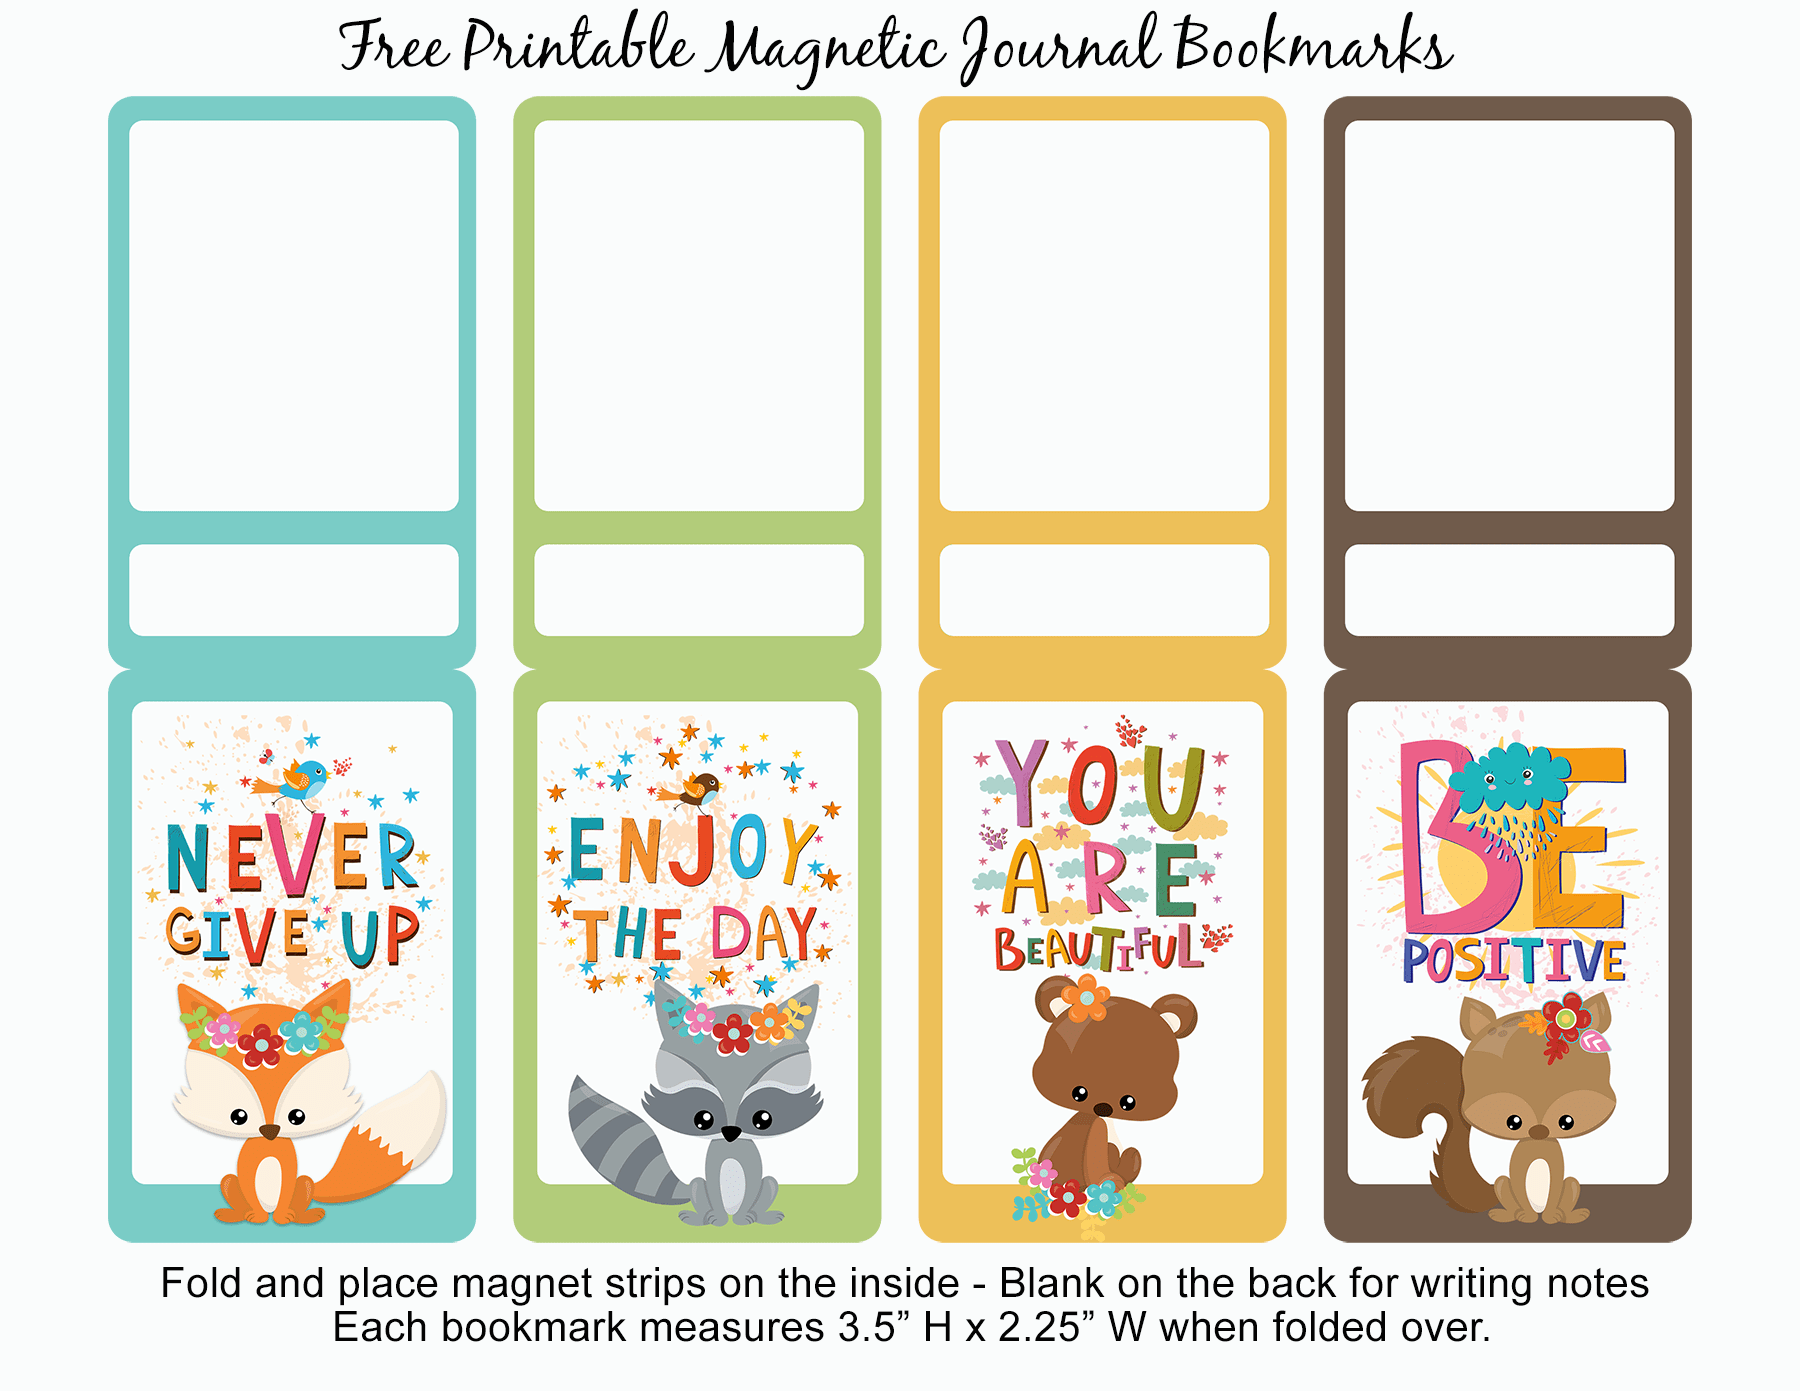 photo regarding Free Printable Inspirational Bookmarks to Color named No cost Printable Magnetic Magazine Bookmarks Inspirational Rates